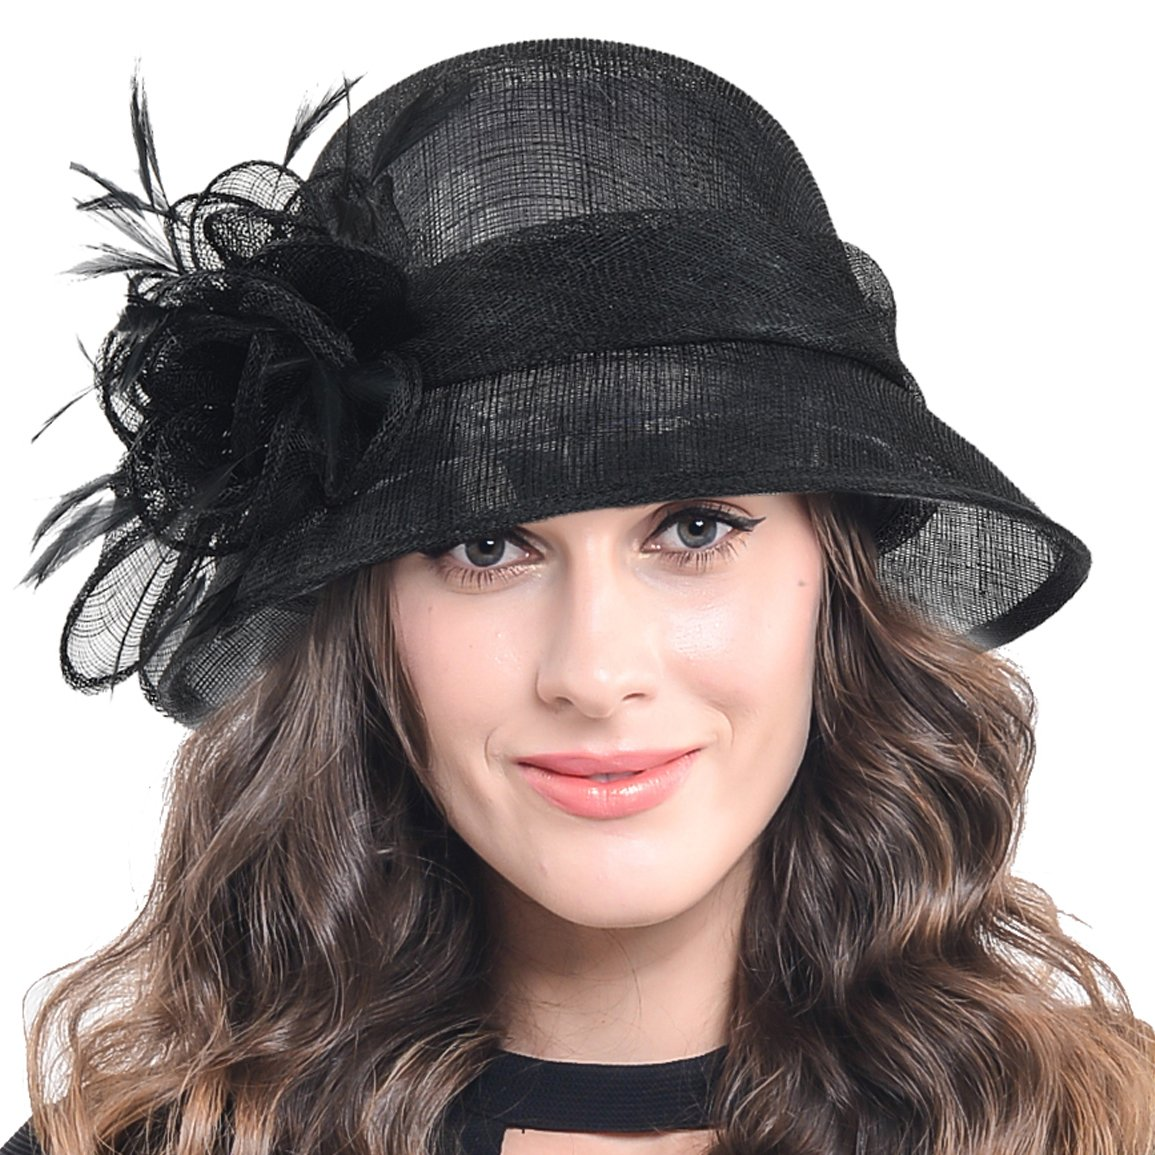 FORBUSITE Occasion Church Wedding Sinamay Cloche Hats for Women SM122 (Black) by FORBUSITE (Image #5)